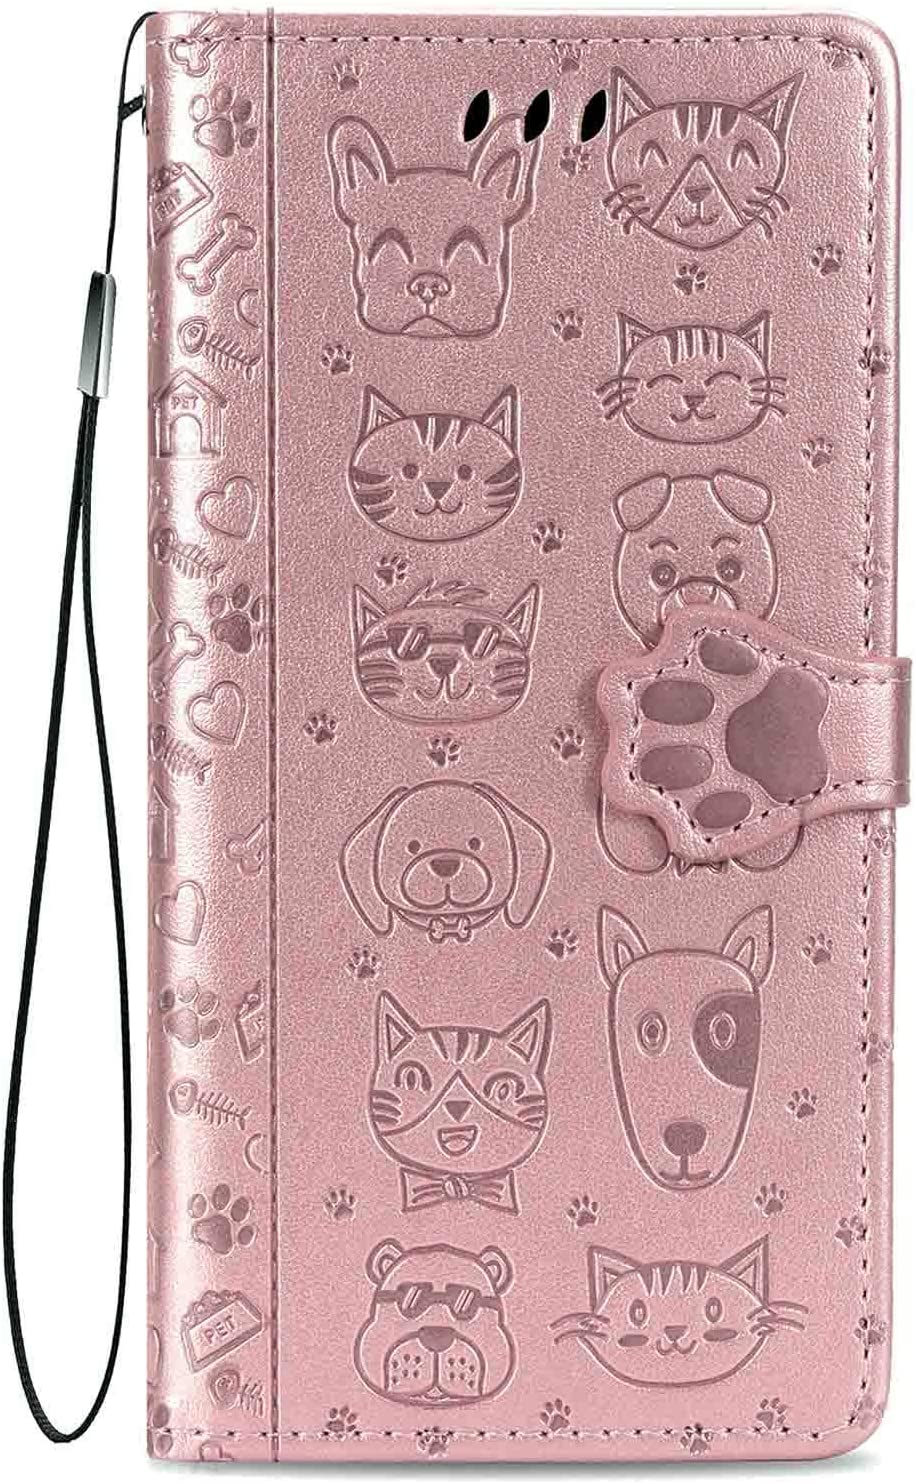 Compatible with iPhone 8 Plus/iPhone 7 Plus Wallet Case,Kickstand Feature Luxury PU Leather Flip Folio Cover with [Card Slots] [Wrist Strap] for Apple iPhone 8 Plus 2017/7 Plus 2016 (5.5